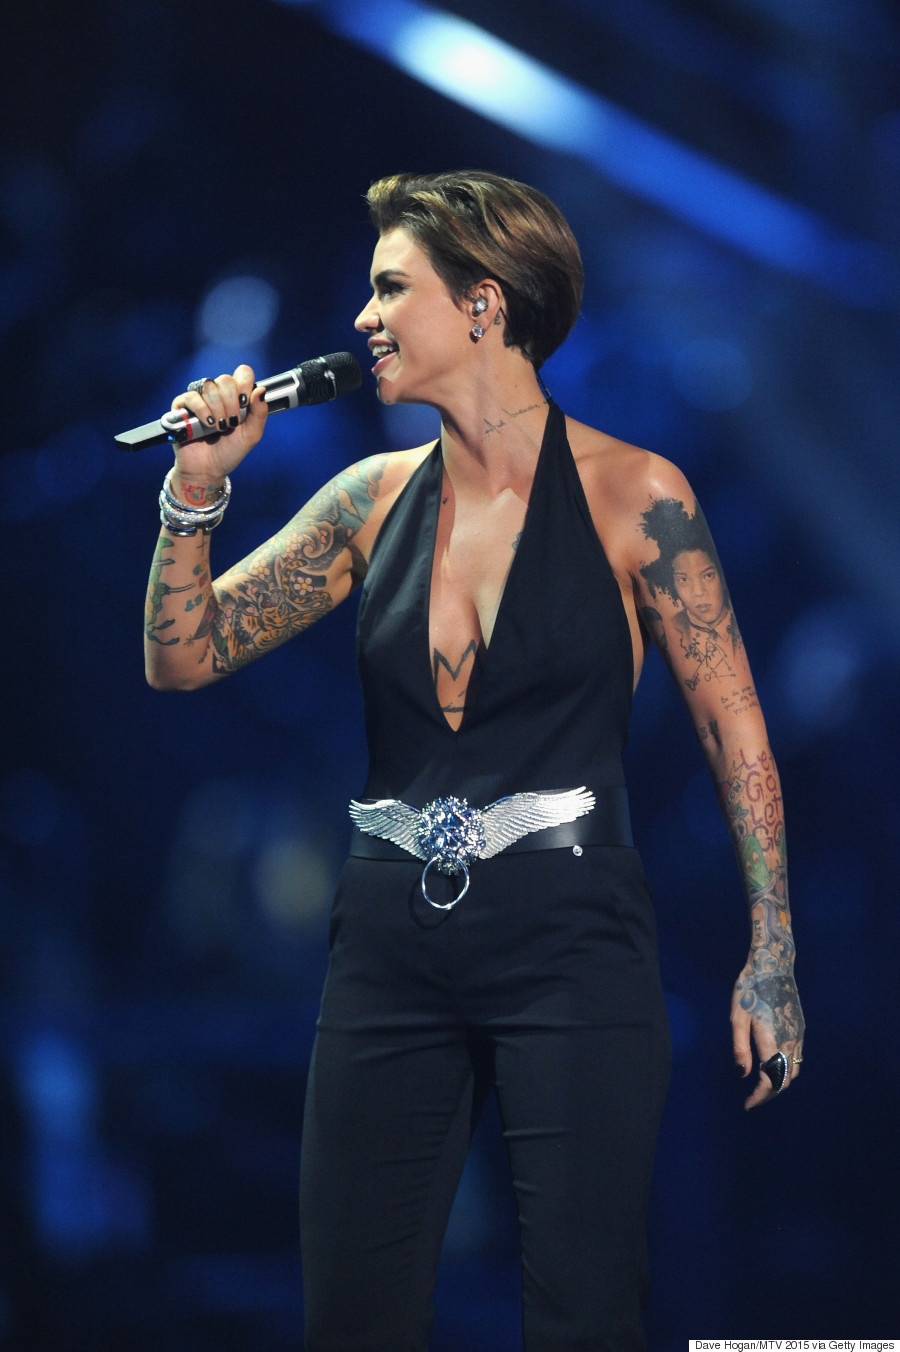 Ruby Rose Slays Every Single Outfit At The 2015 MTV EMAs